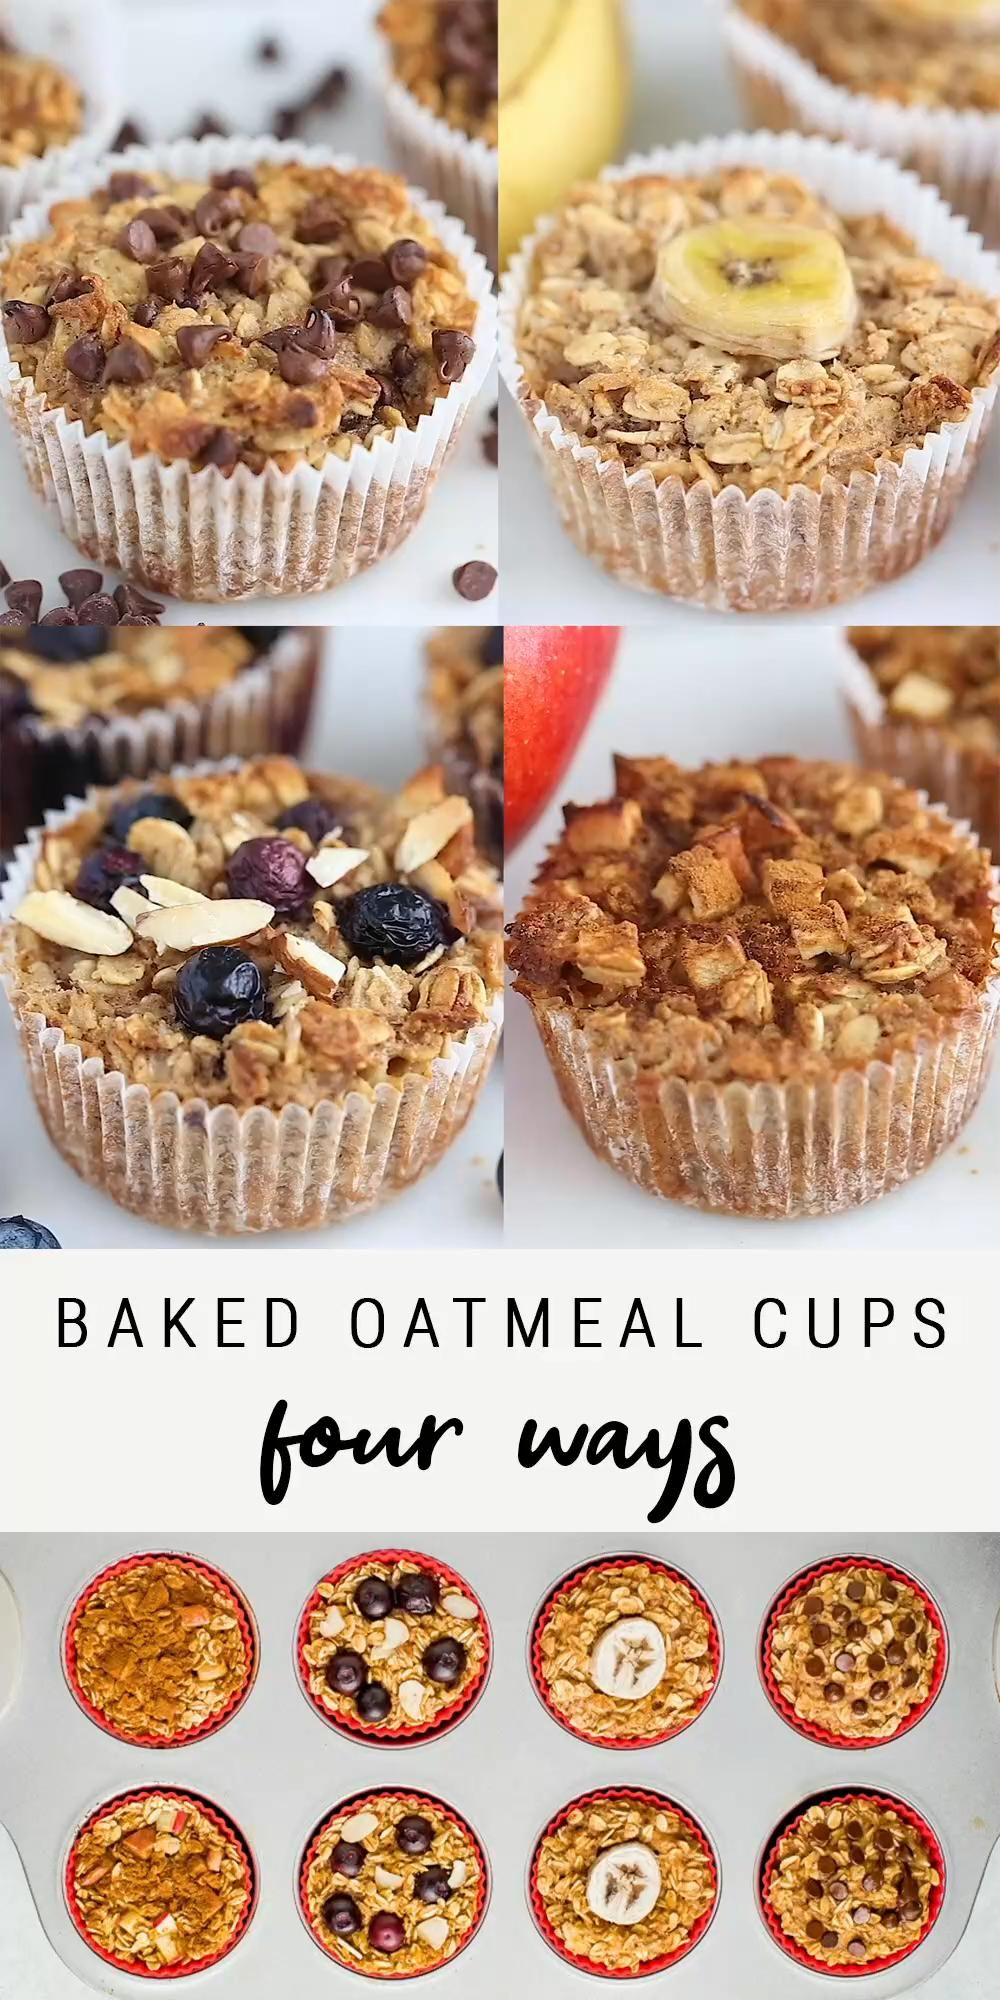 Baked Oatmeal Cups 4 -Ways | Healthy + Easy Recipe